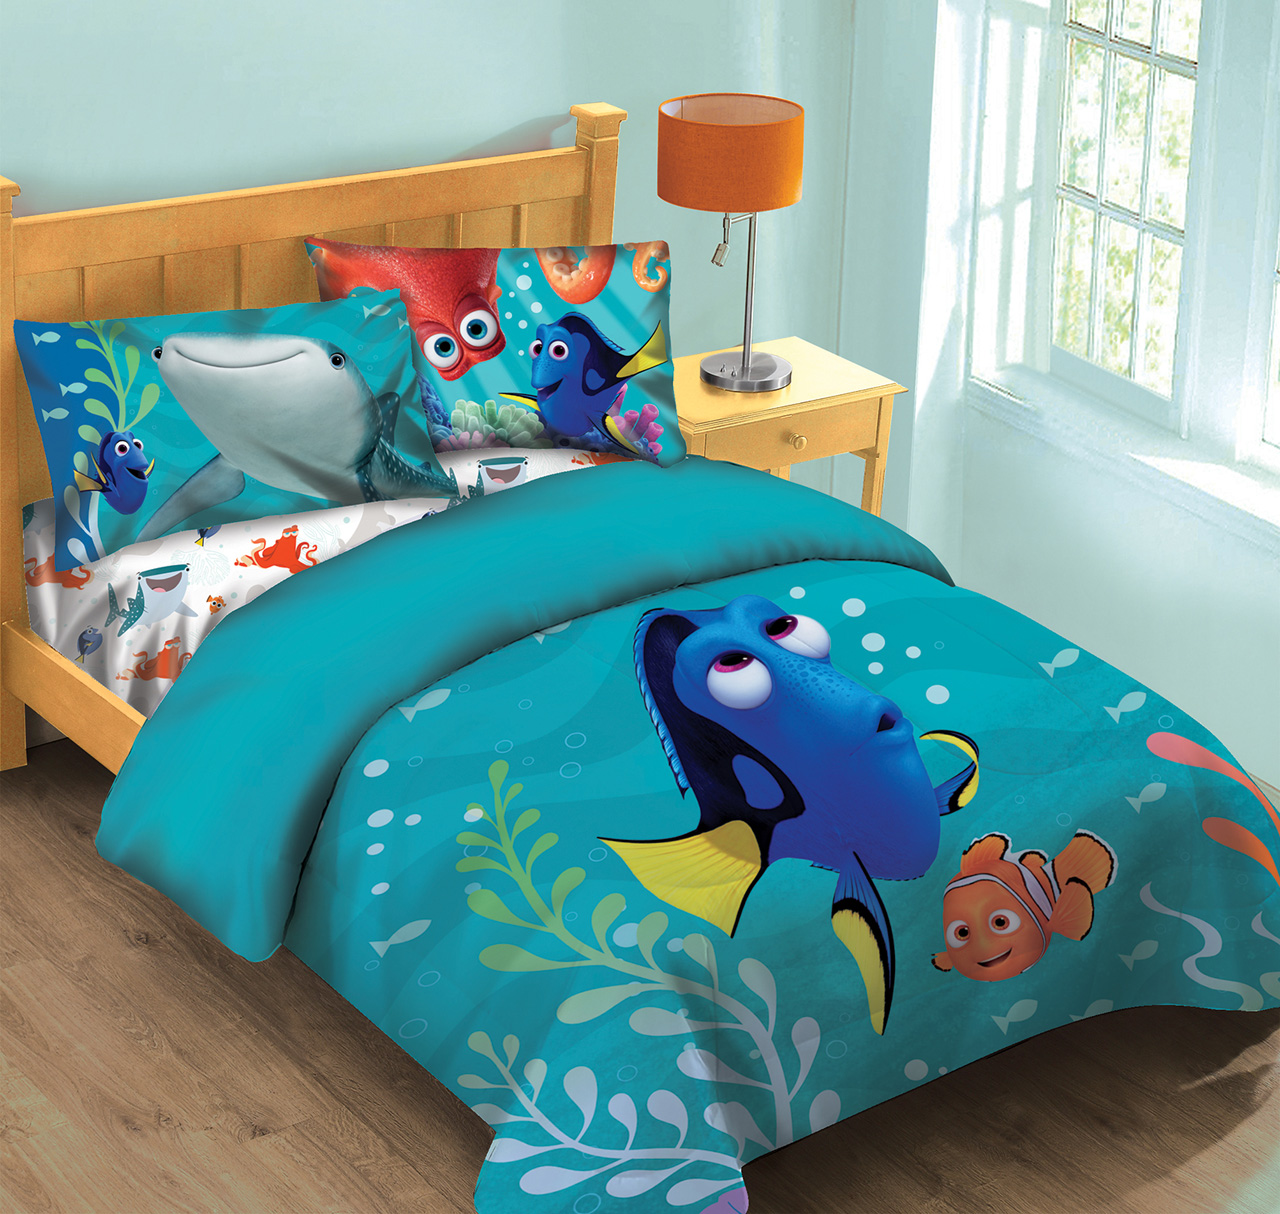 Disney Finding Dory Fish Finder Twin Comforter Set w Fitted Sheet. Disney Finding Dory Fish Finder Comforter Set w Fitted Sheet